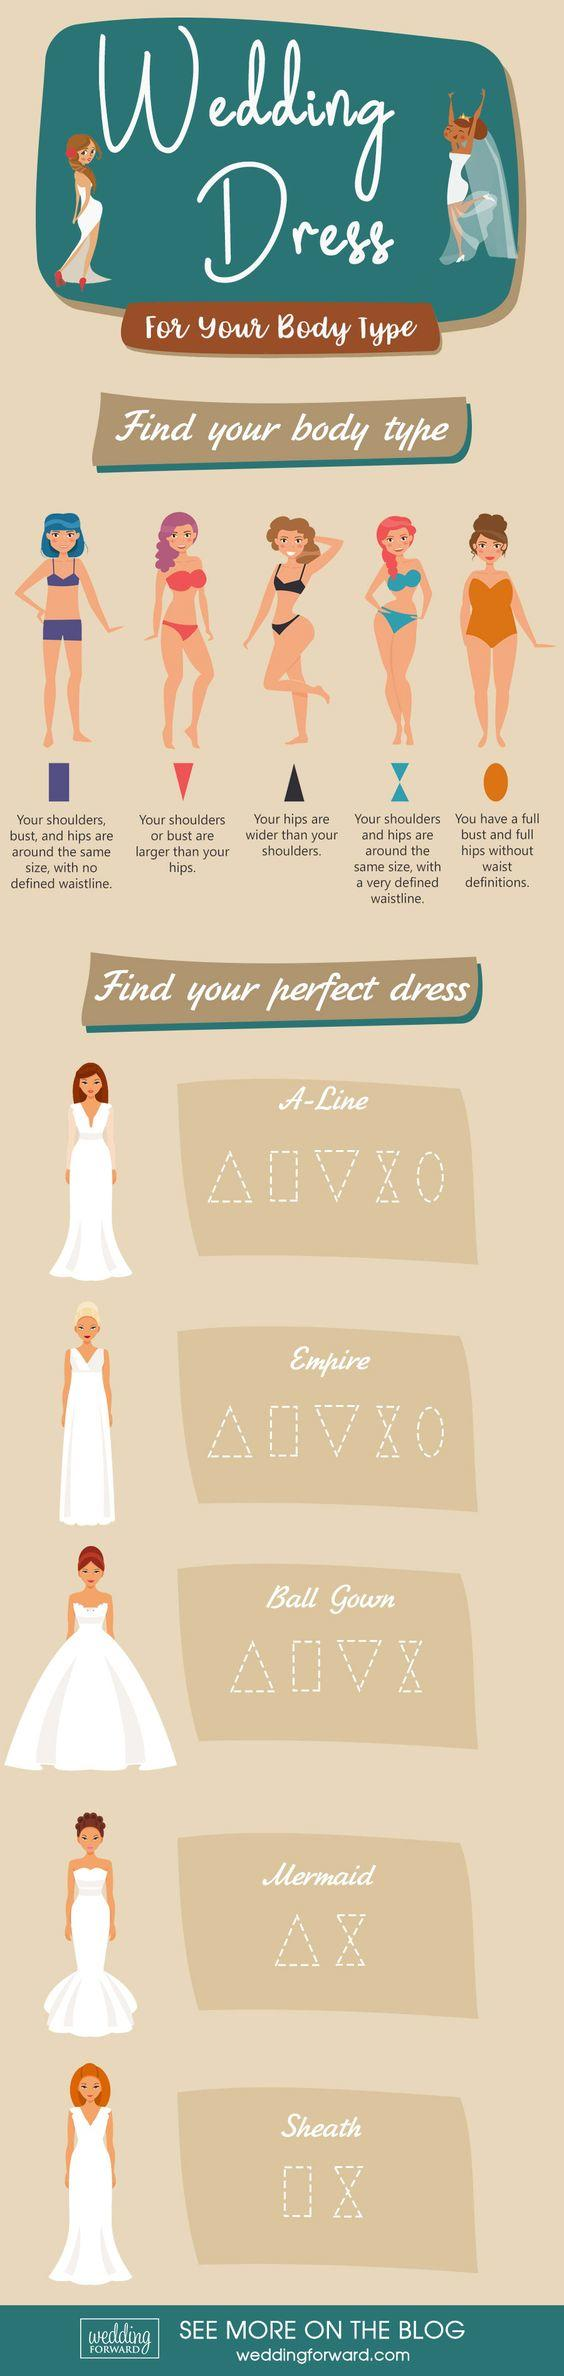 wedding dress shopping choosing dress for each body type